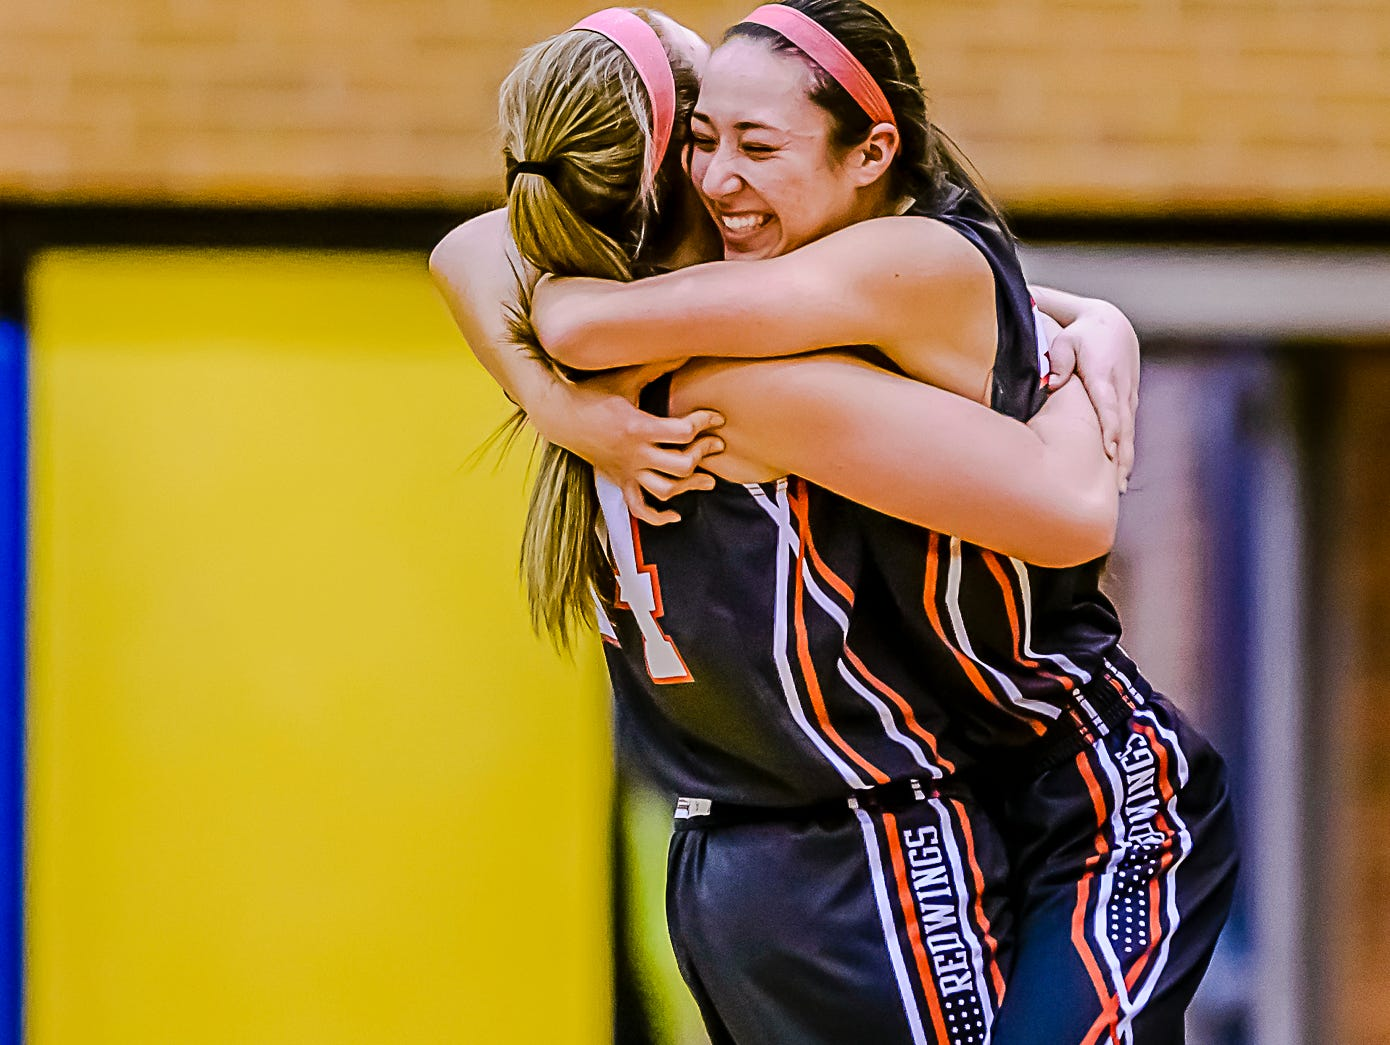 Erika Ballinger ,right, and Brooke Mazzolini of St. Johns hug after their Class A regional final win over Saginaw Heritage Thursday March 10, 2016 at Midland High in Midland. KEVIN W. FOWLER PHOTO